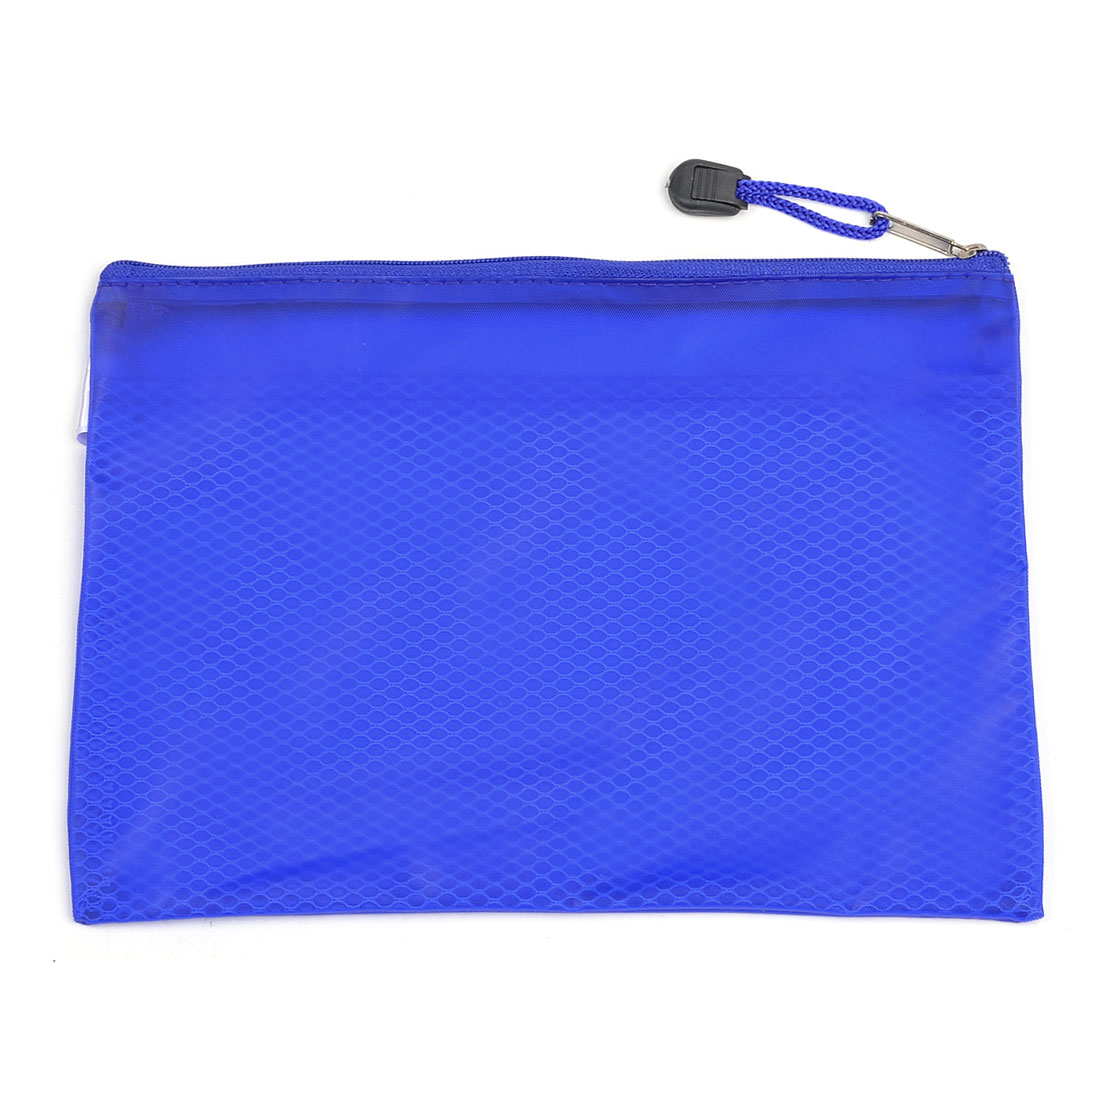 Students 24 x 17cm Mesh Designed PVC Pen File Bags Folder Blue